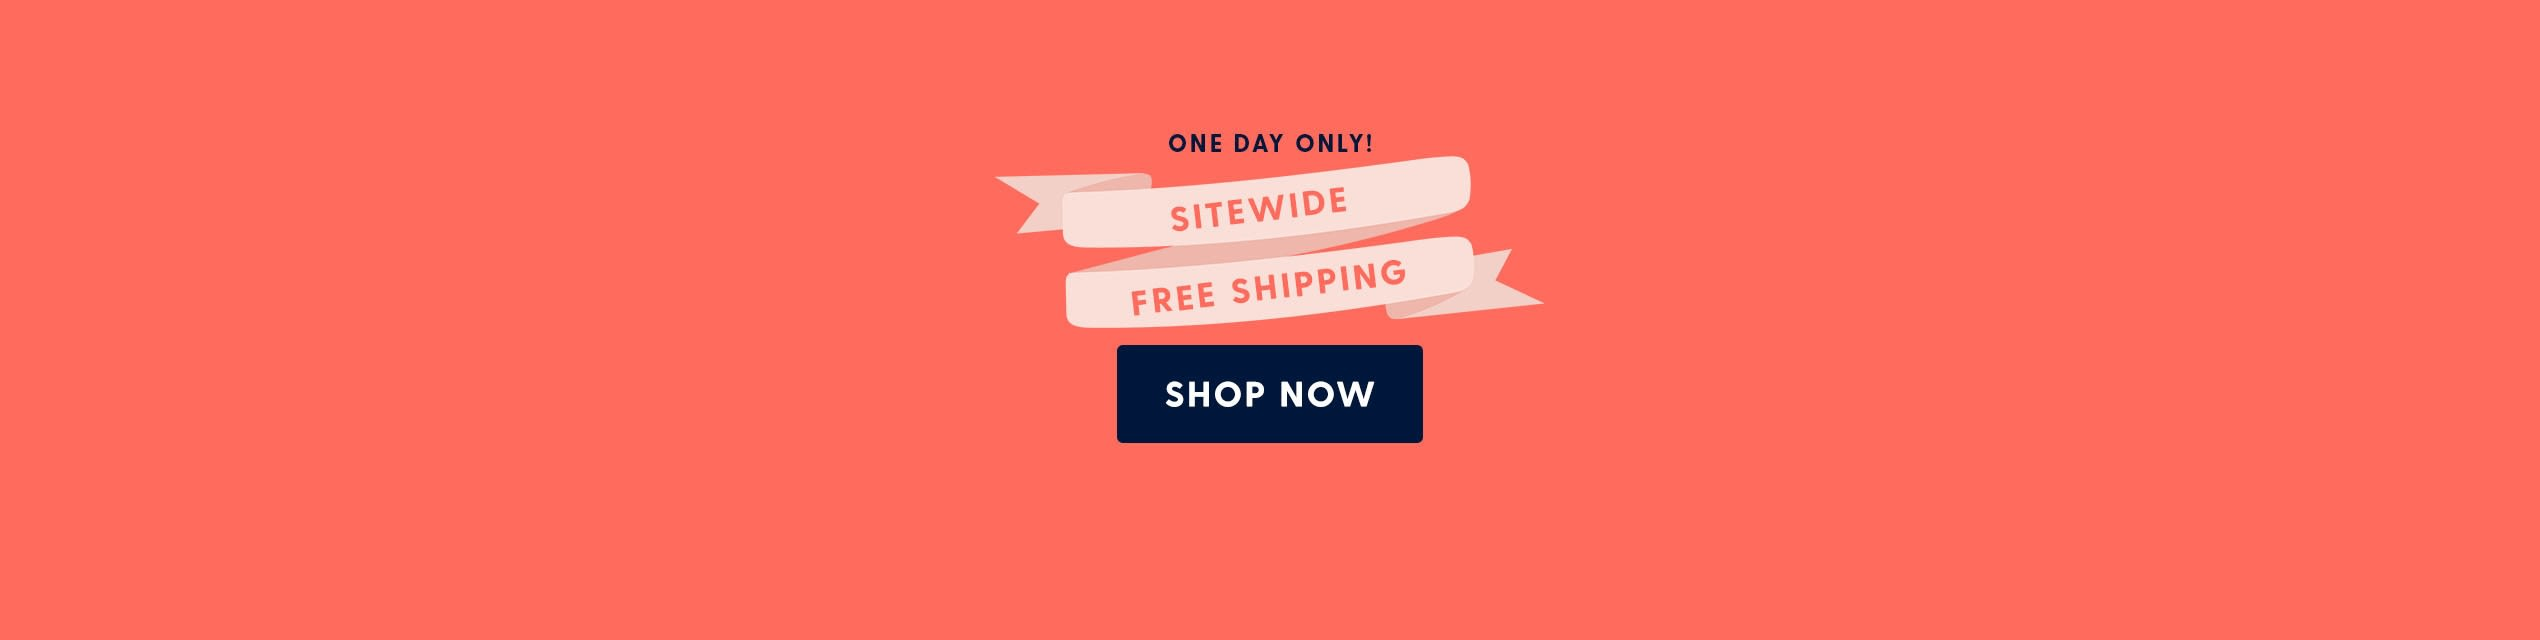 One Day Only! Sitewide Free Shipping. Shop Now